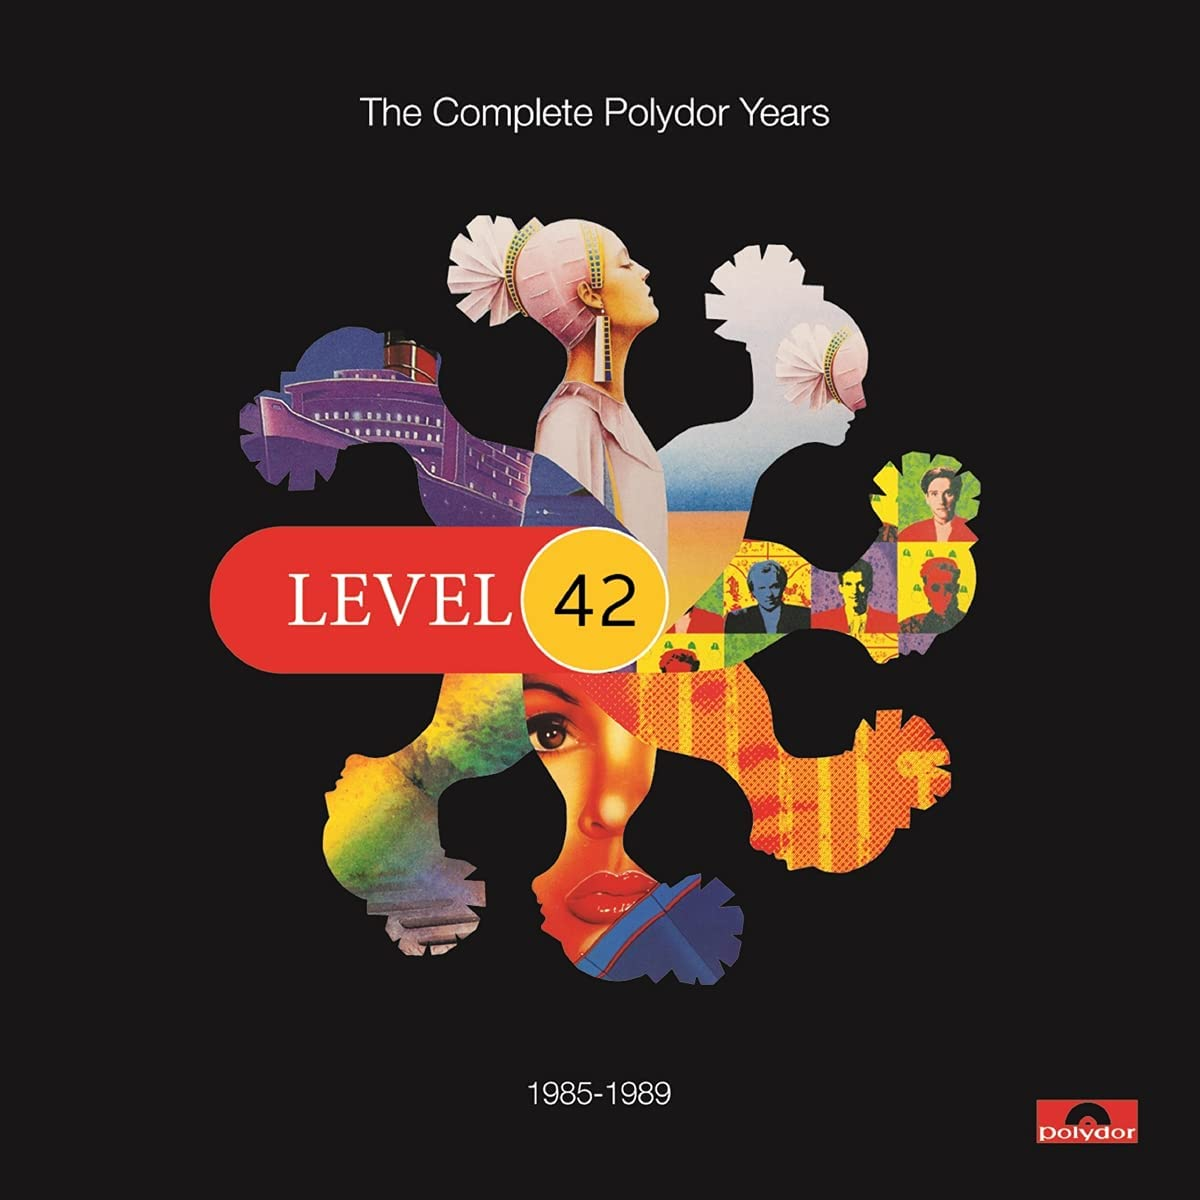 Level 42 / The Complete Polydor Years 1985-1989 10CD box set